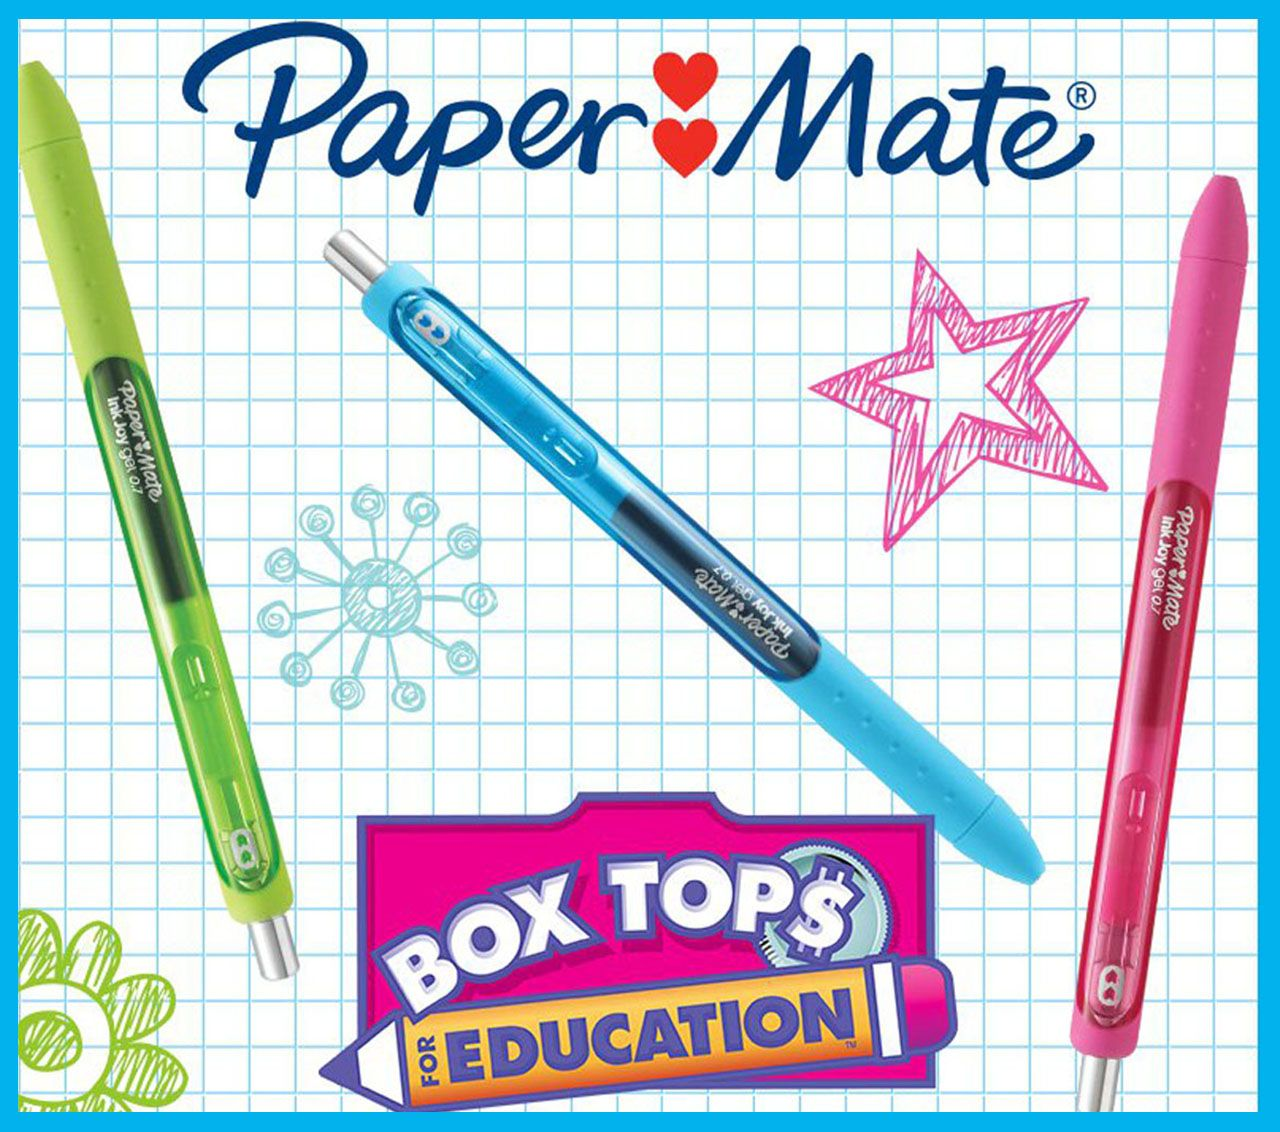 paper-mate-and-box-tops_bp1d.jpg